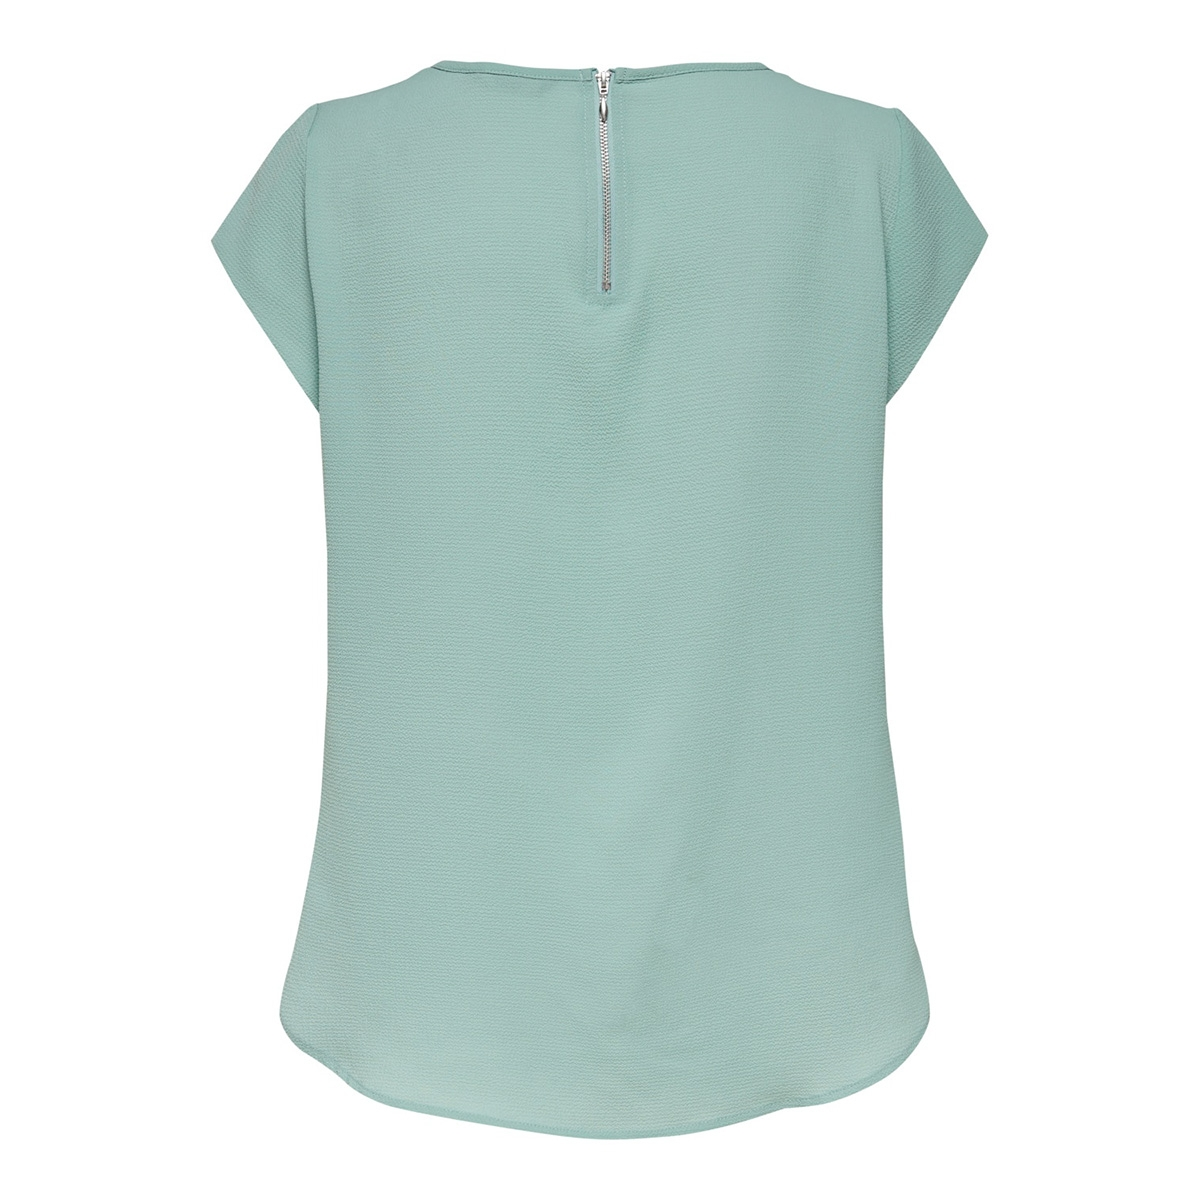 onlvic s/s solid top noos wvn 15142784 only t-shirt chinios green